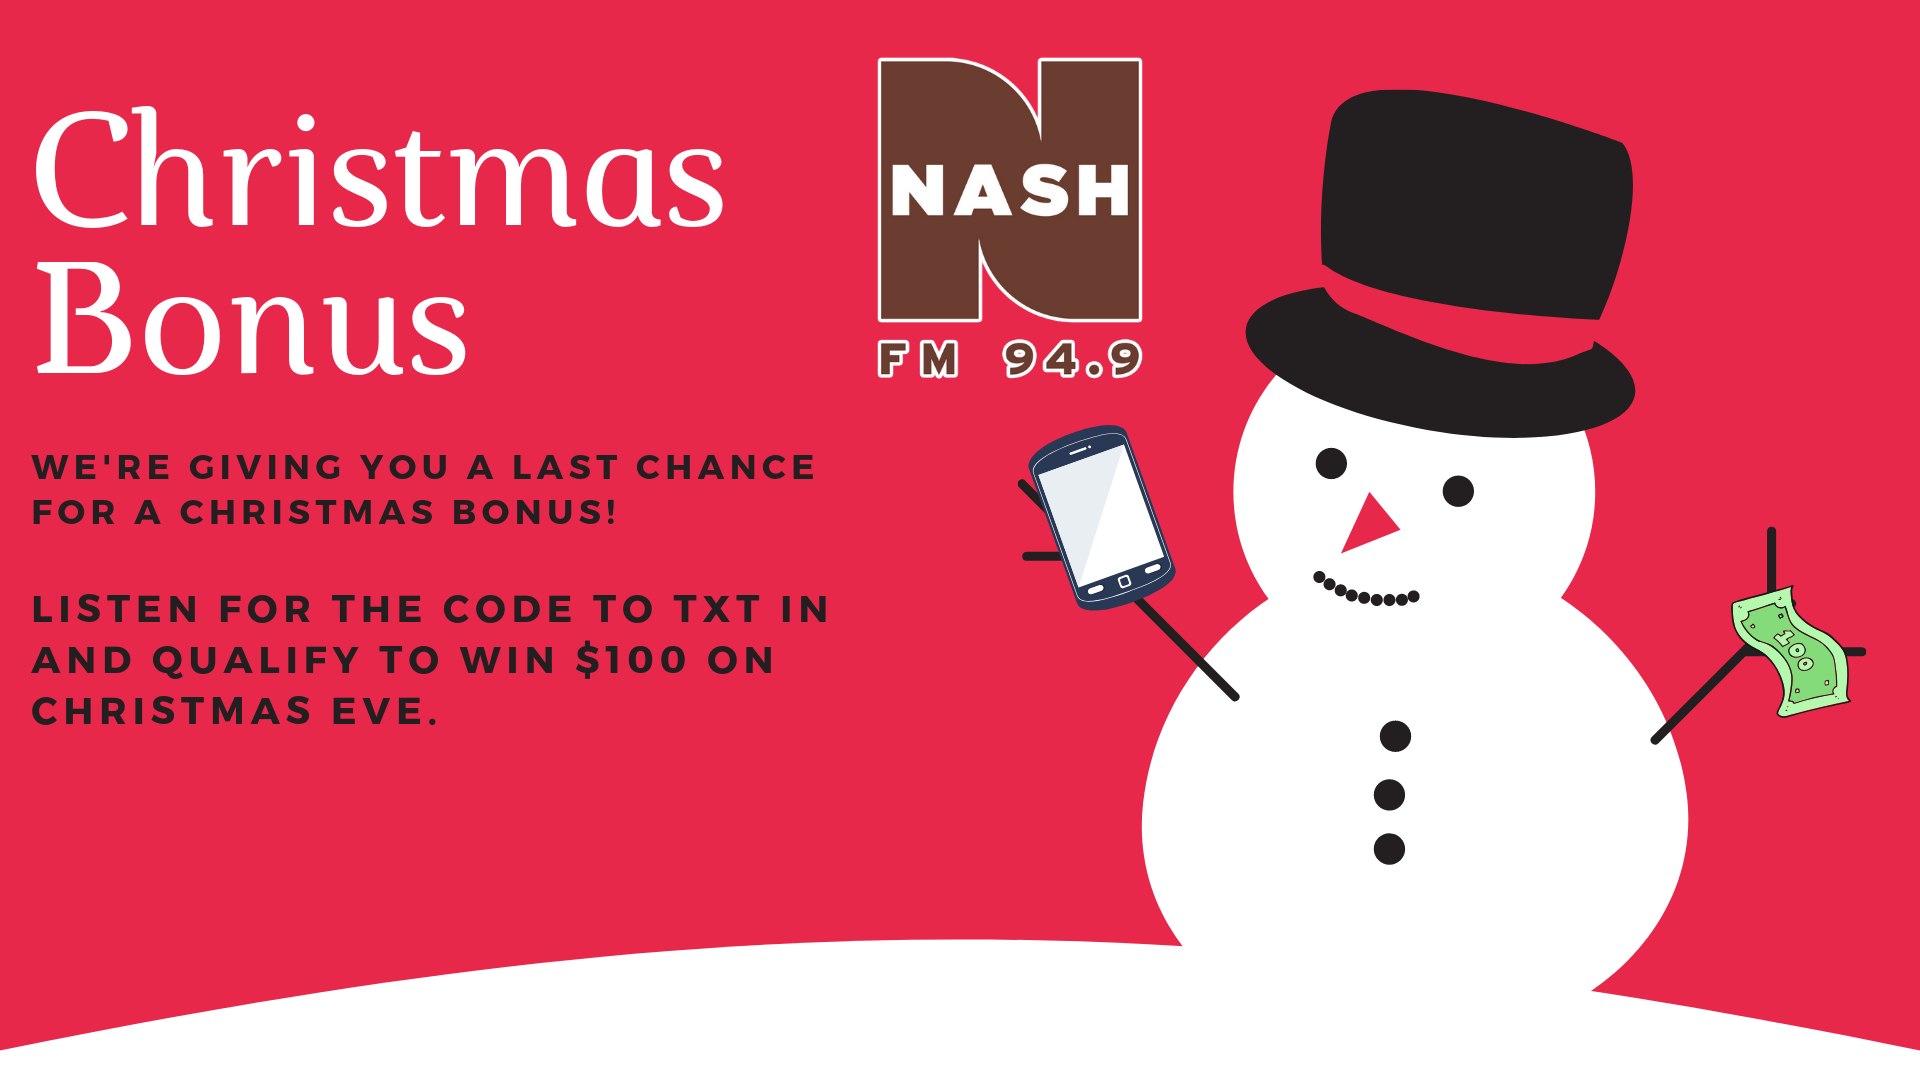 Christmas Bonus- TXT to WIN